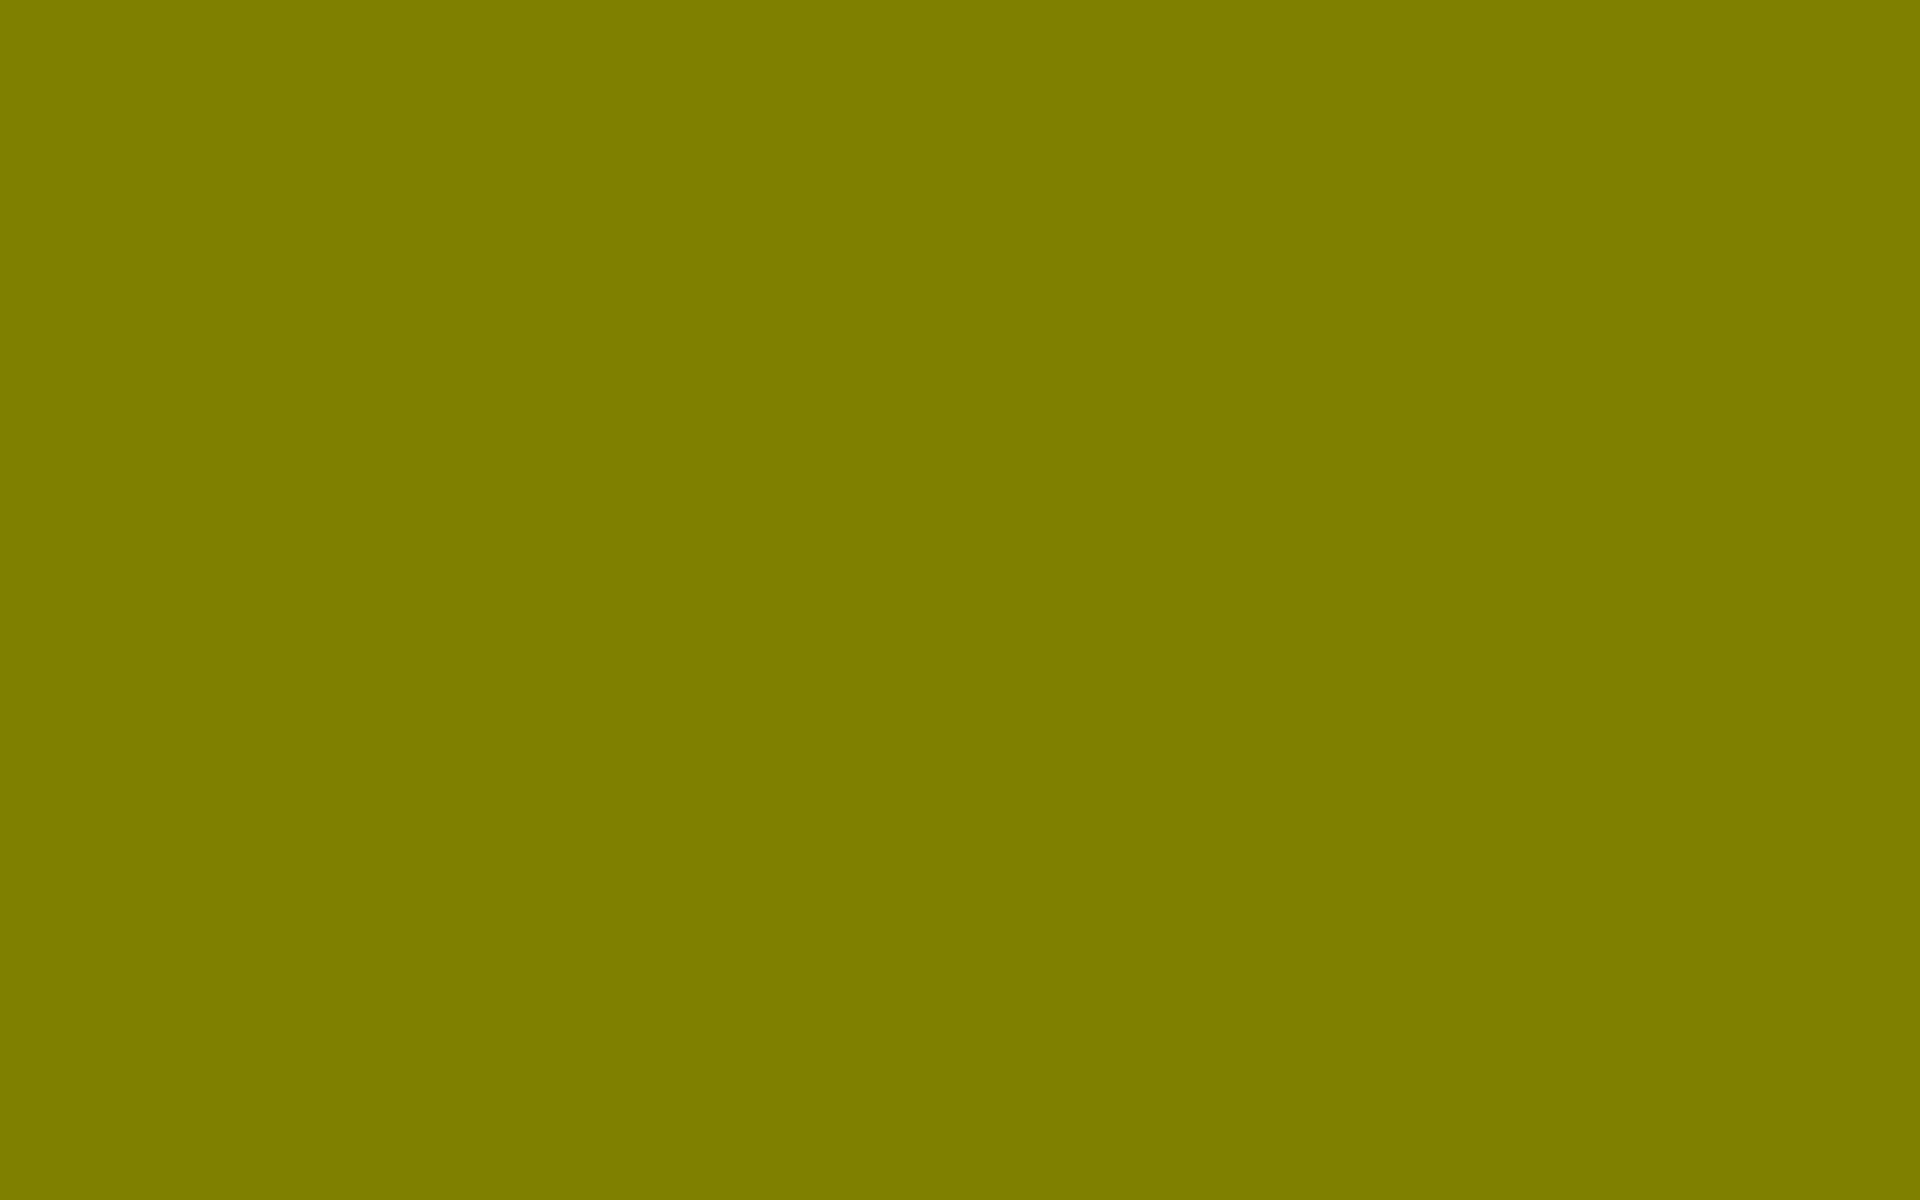 1920x1200 Olive Solid Color Background